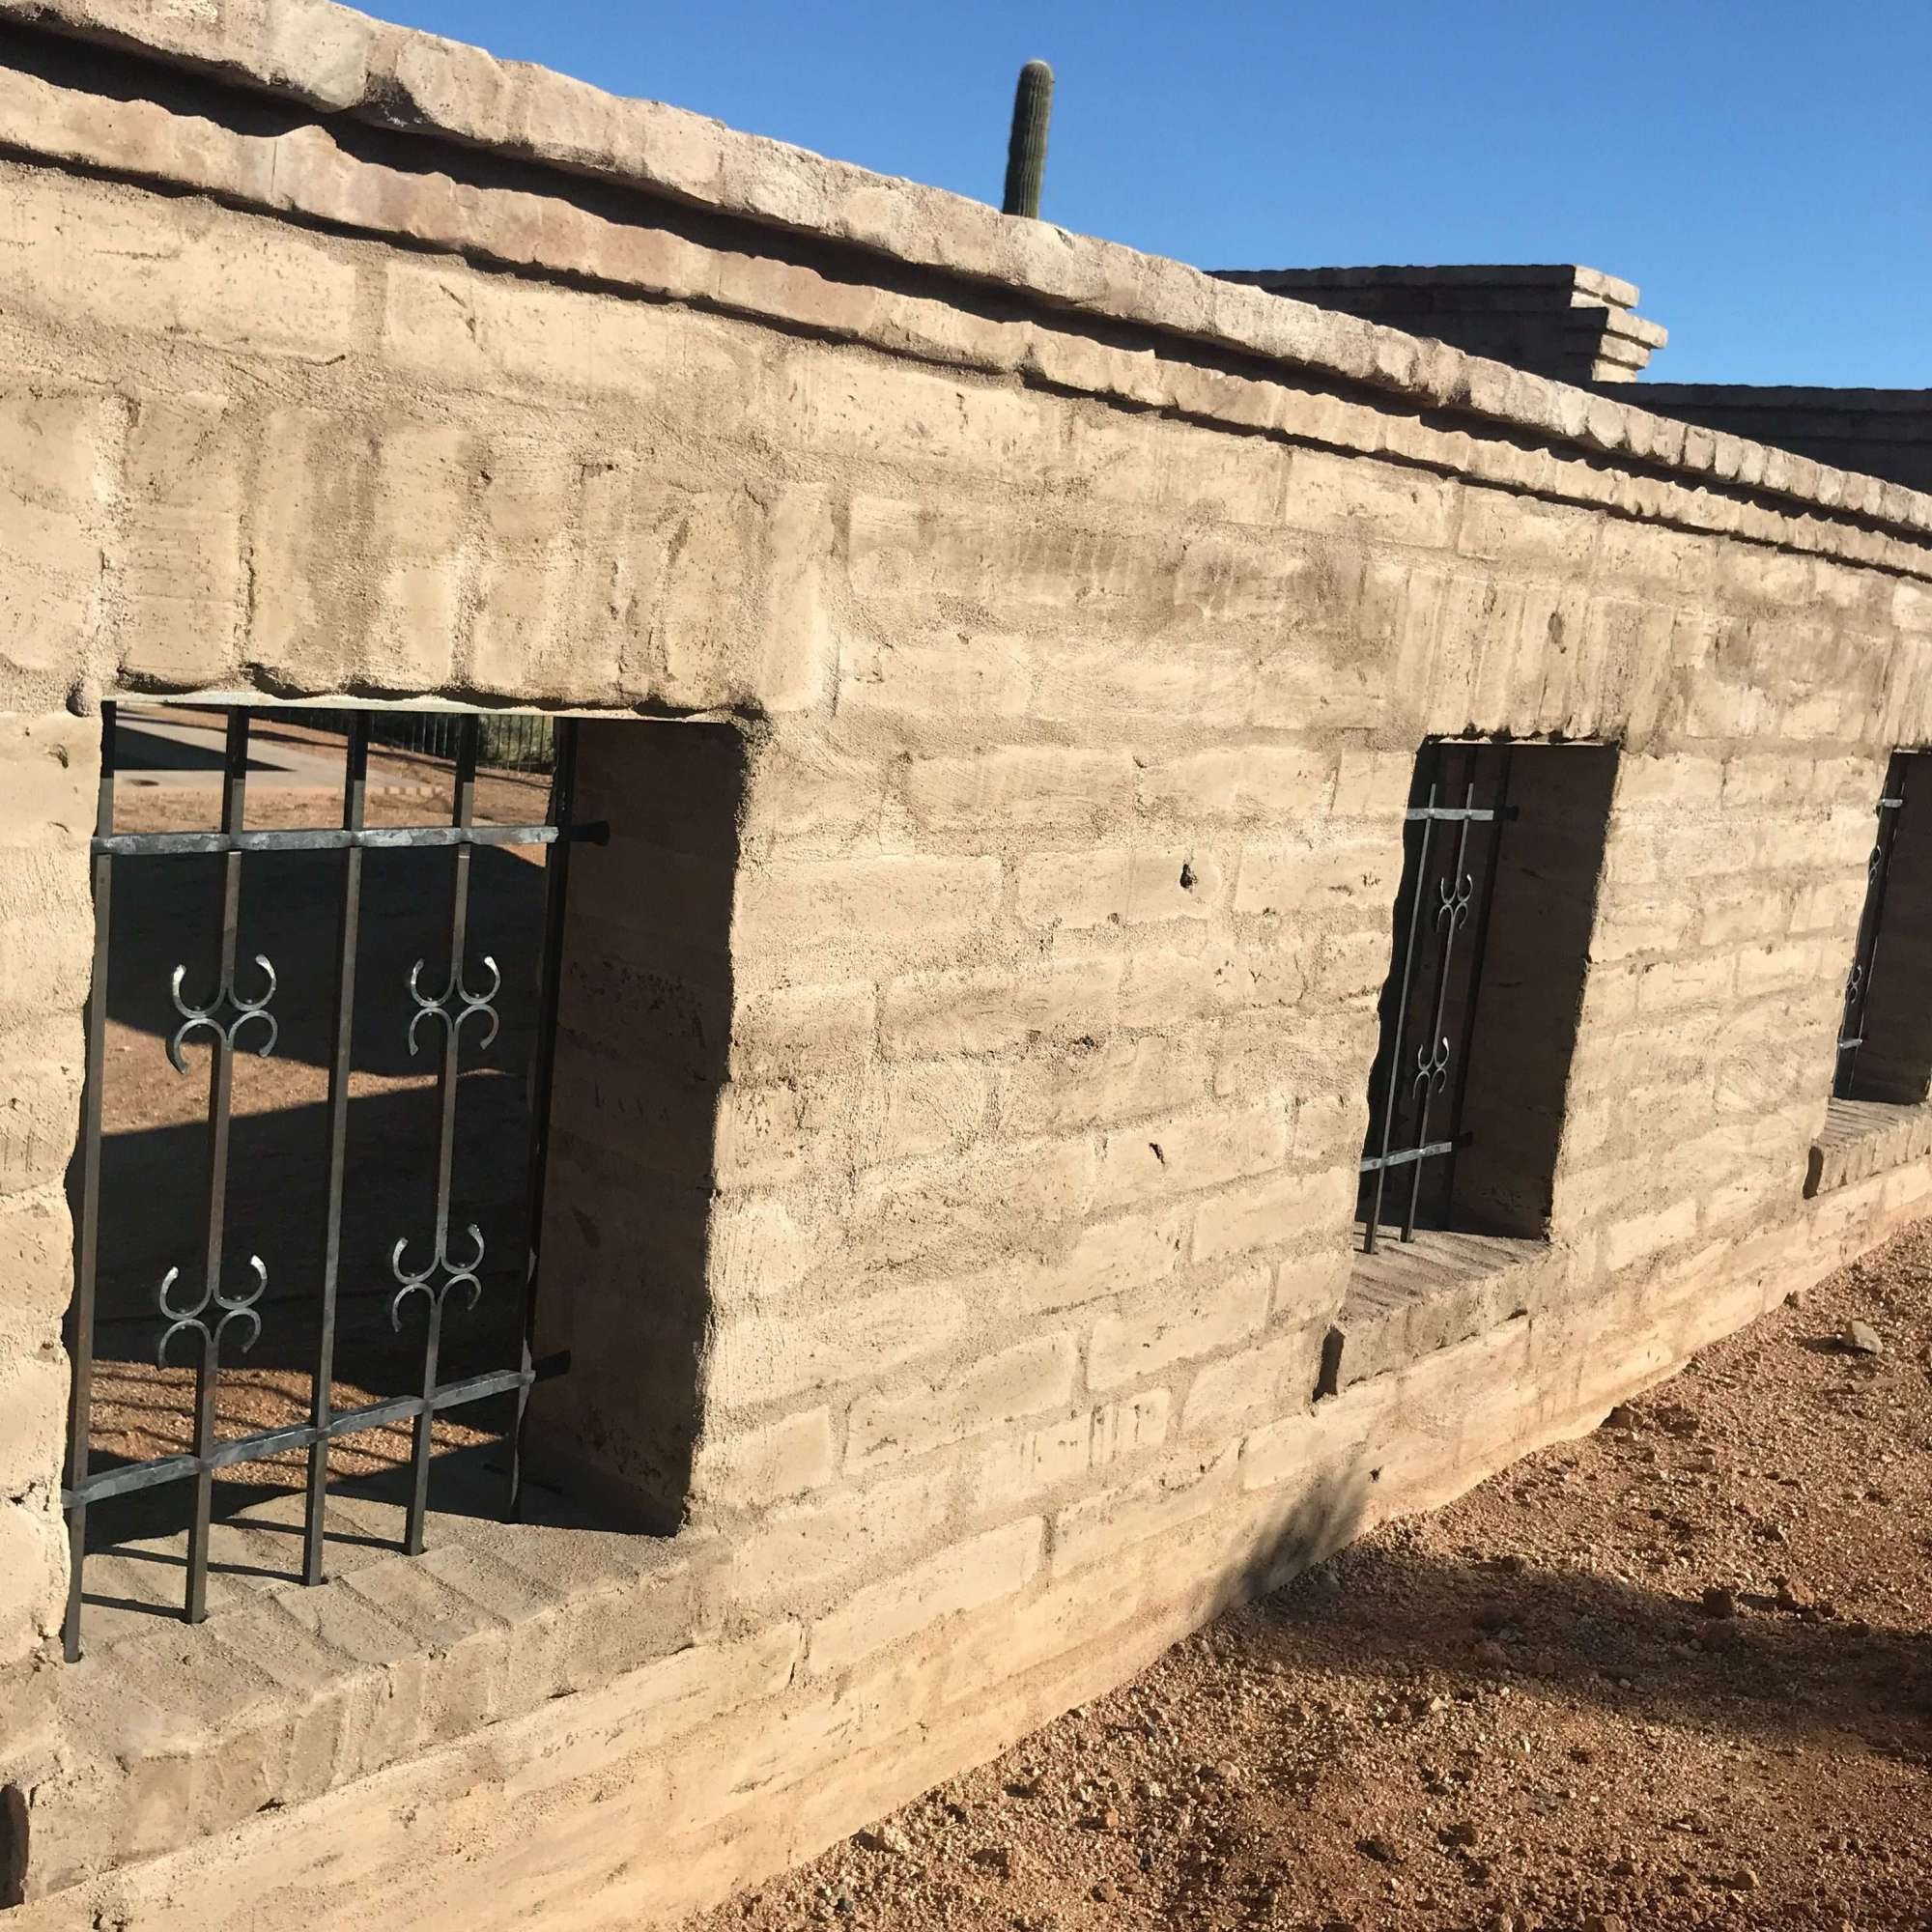 Adobe wall with wrought iron window grills